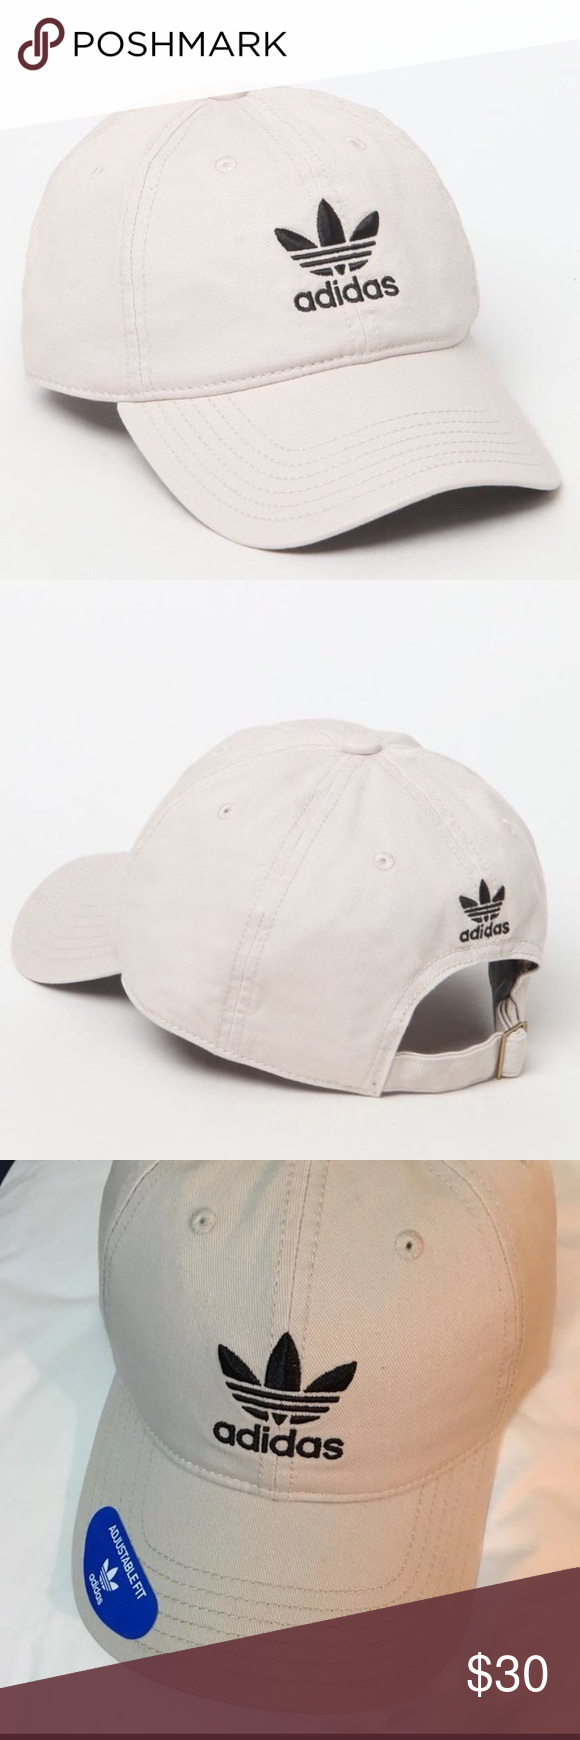 49959ada0b0 NWT Adidas Trefoil Firebird Khaki Cap Hat Brand new with tags! One size  fits all